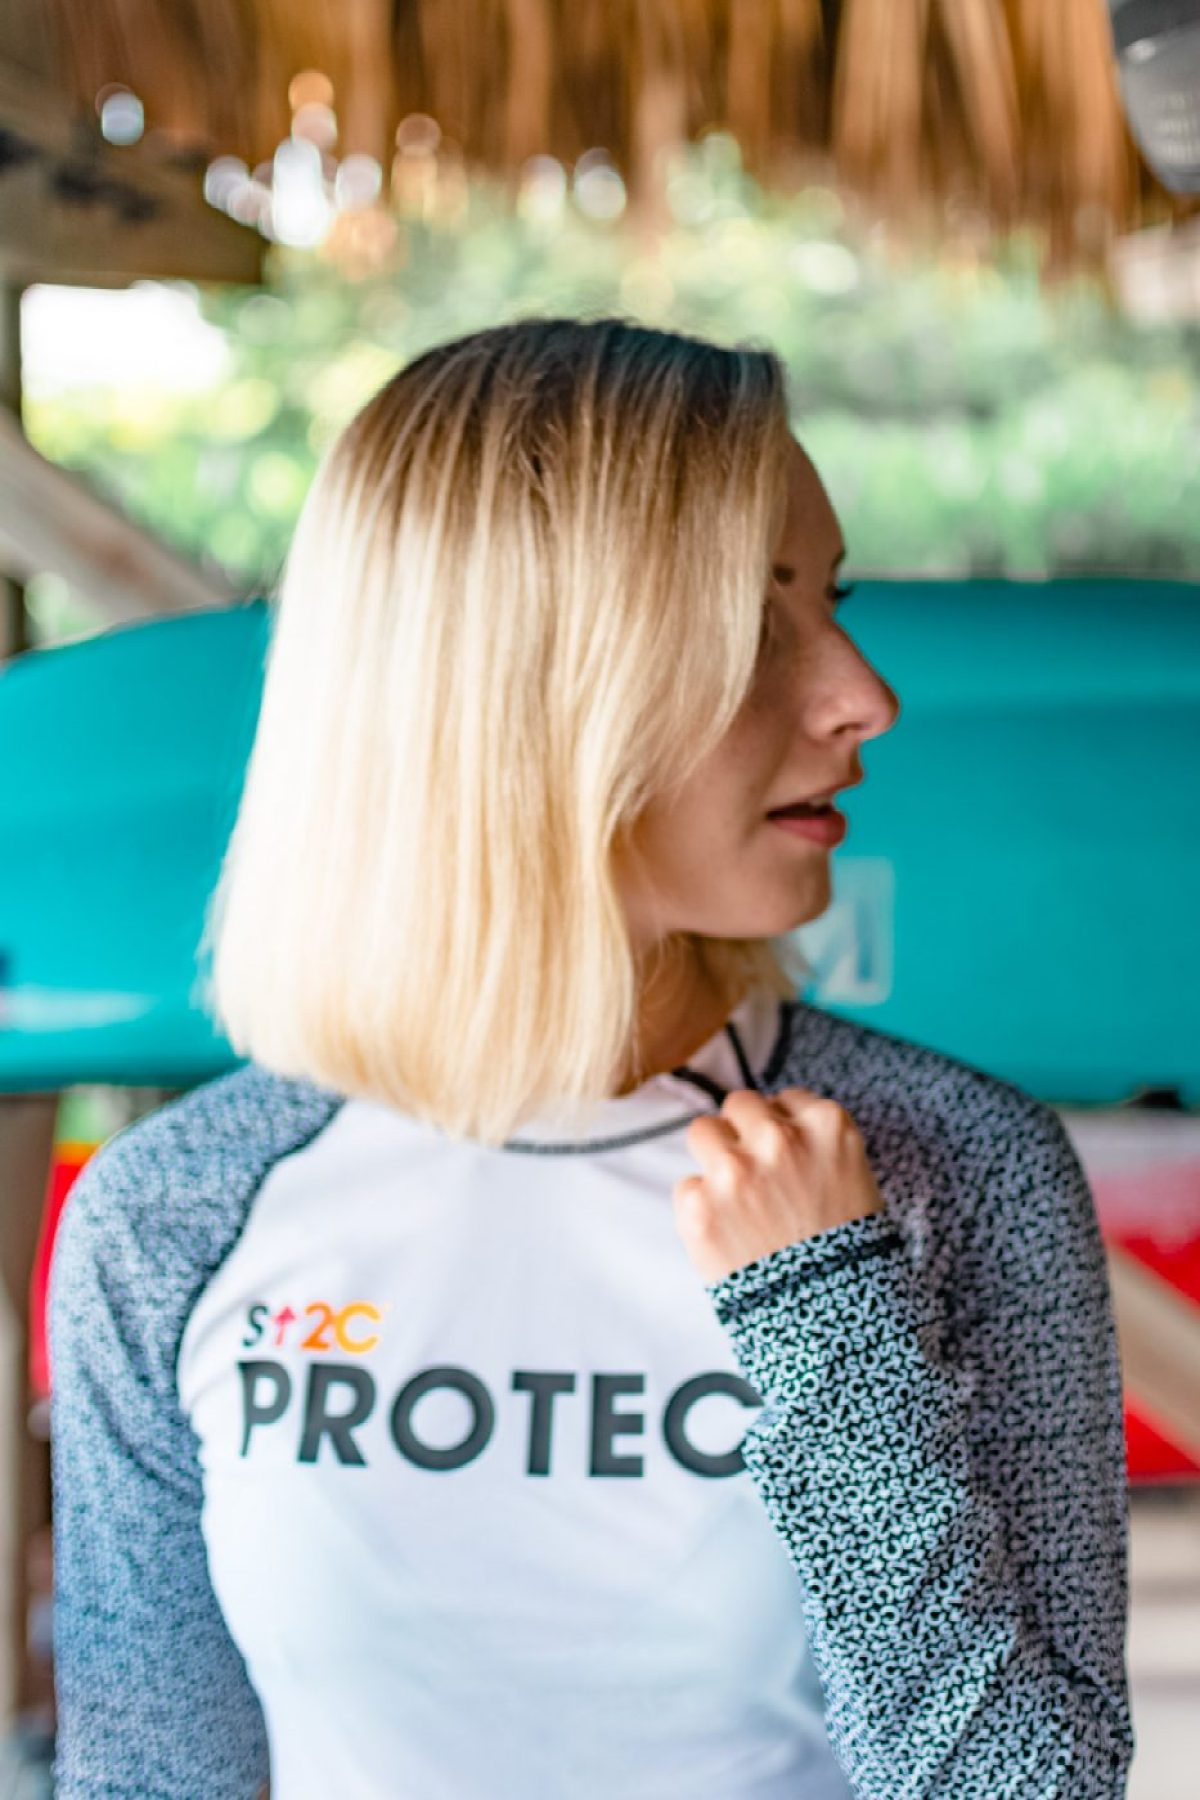 Stand Up 2 Cancer Protect Rashguard from Cabana Life worn by Jenny Bess of Sweet Teal